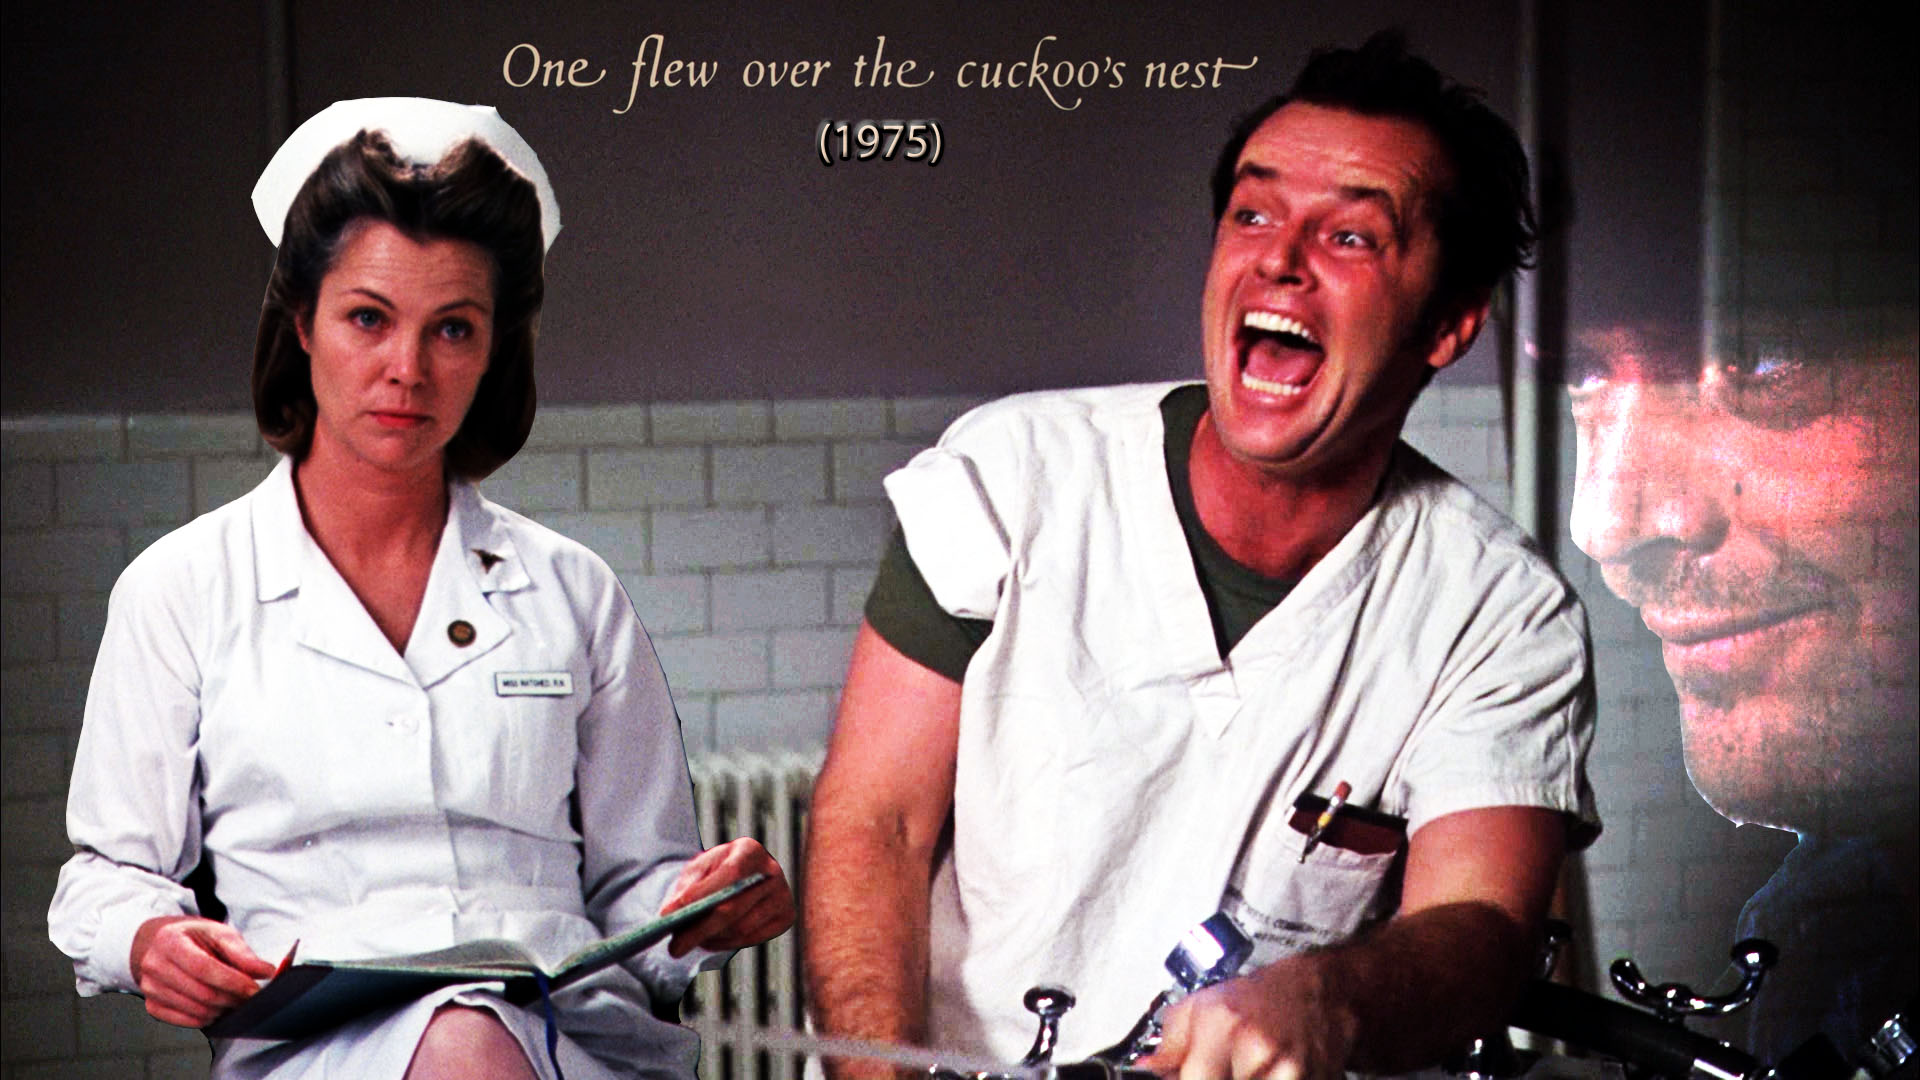 a movie analysis of one flew over the cuckoos nest Psychological connotations in one flew over the cuckoo's nest we feel that one flew over the cuckoo's nest is filled with many psychological connotations this movie is set in a mental hospital where mcmurphy was admitted to be psychologically evaluated because of violent behavior.